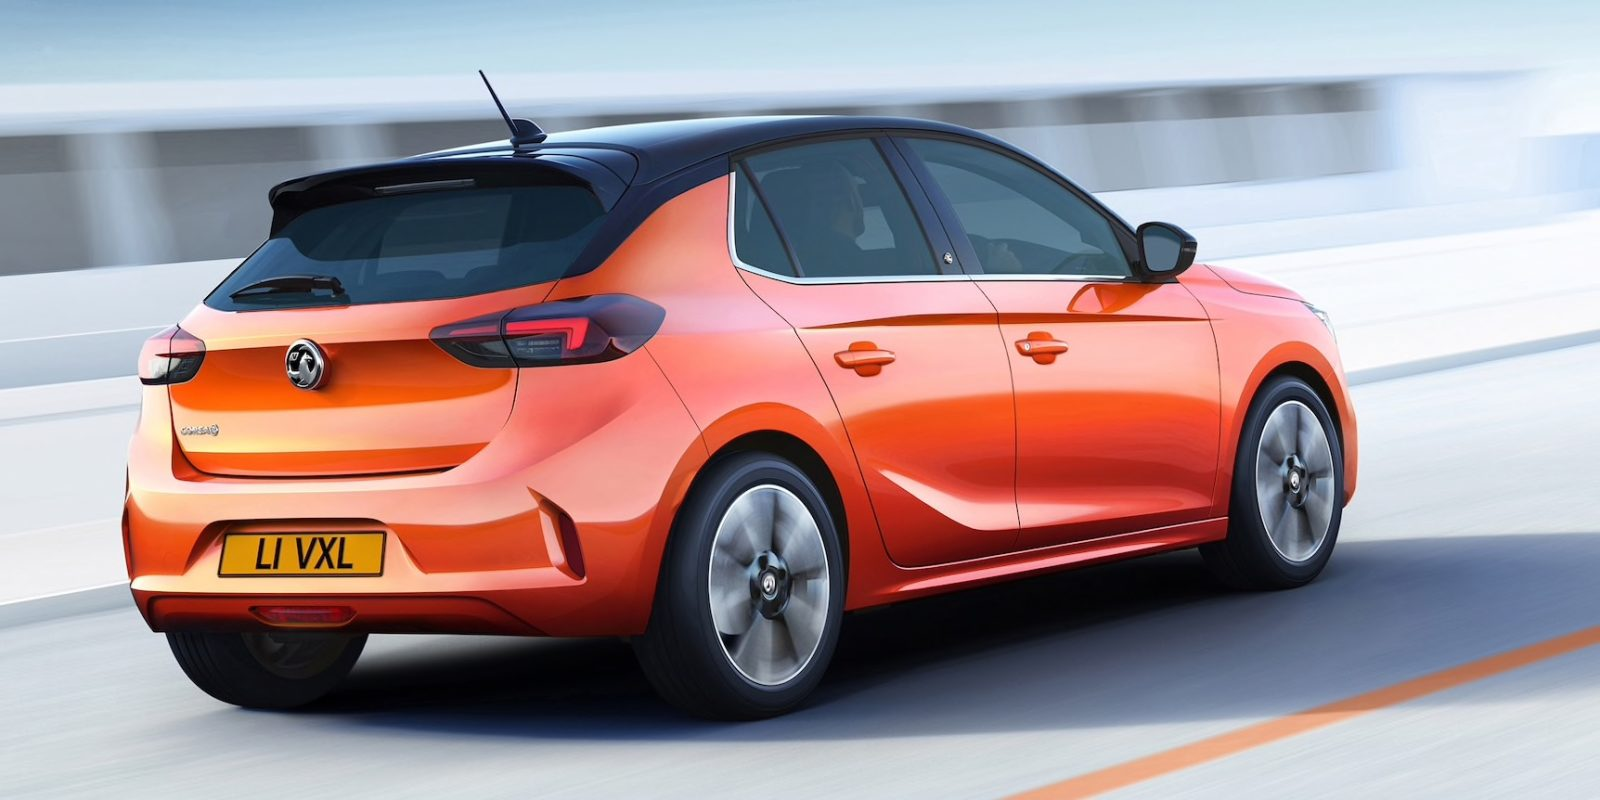 Opel is bringing all-electric Corsa-e to production in 'early 2020'